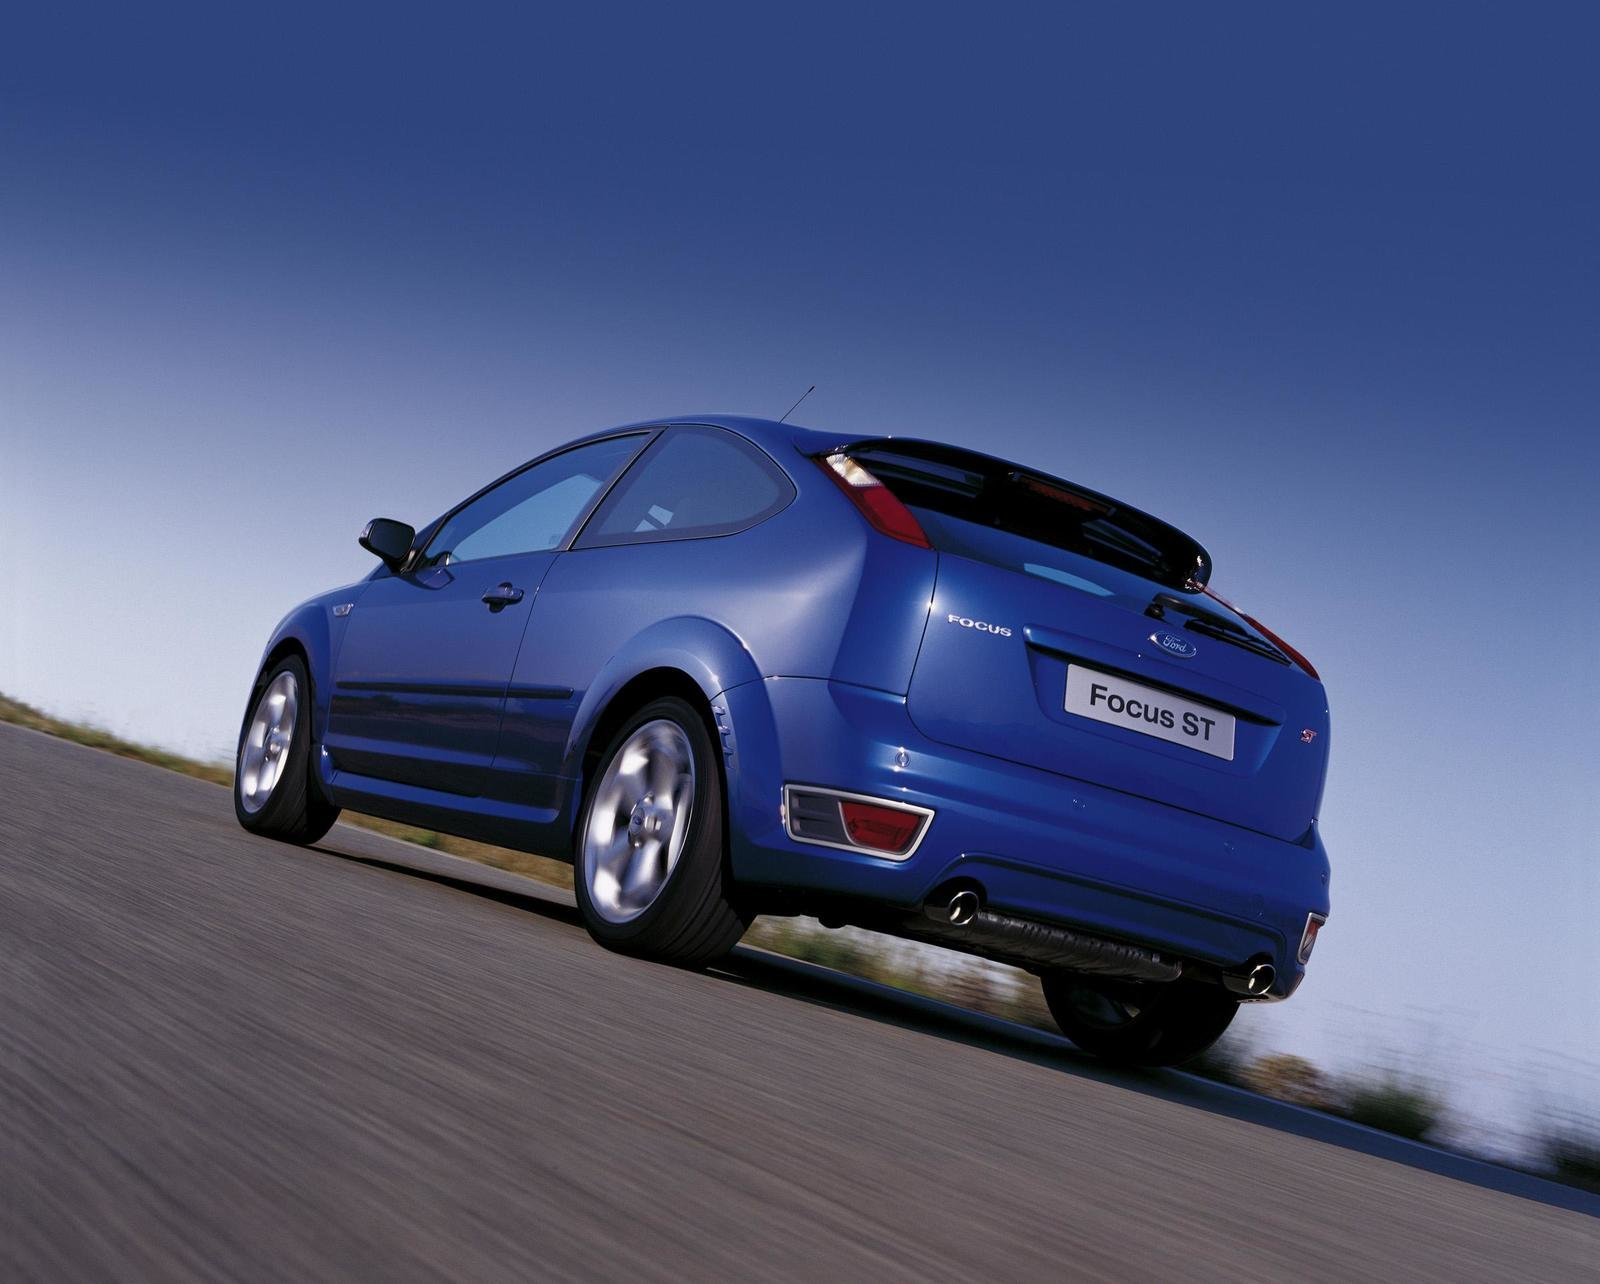 2007 ford focus st picture 154052 car review top speed. Black Bedroom Furniture Sets. Home Design Ideas